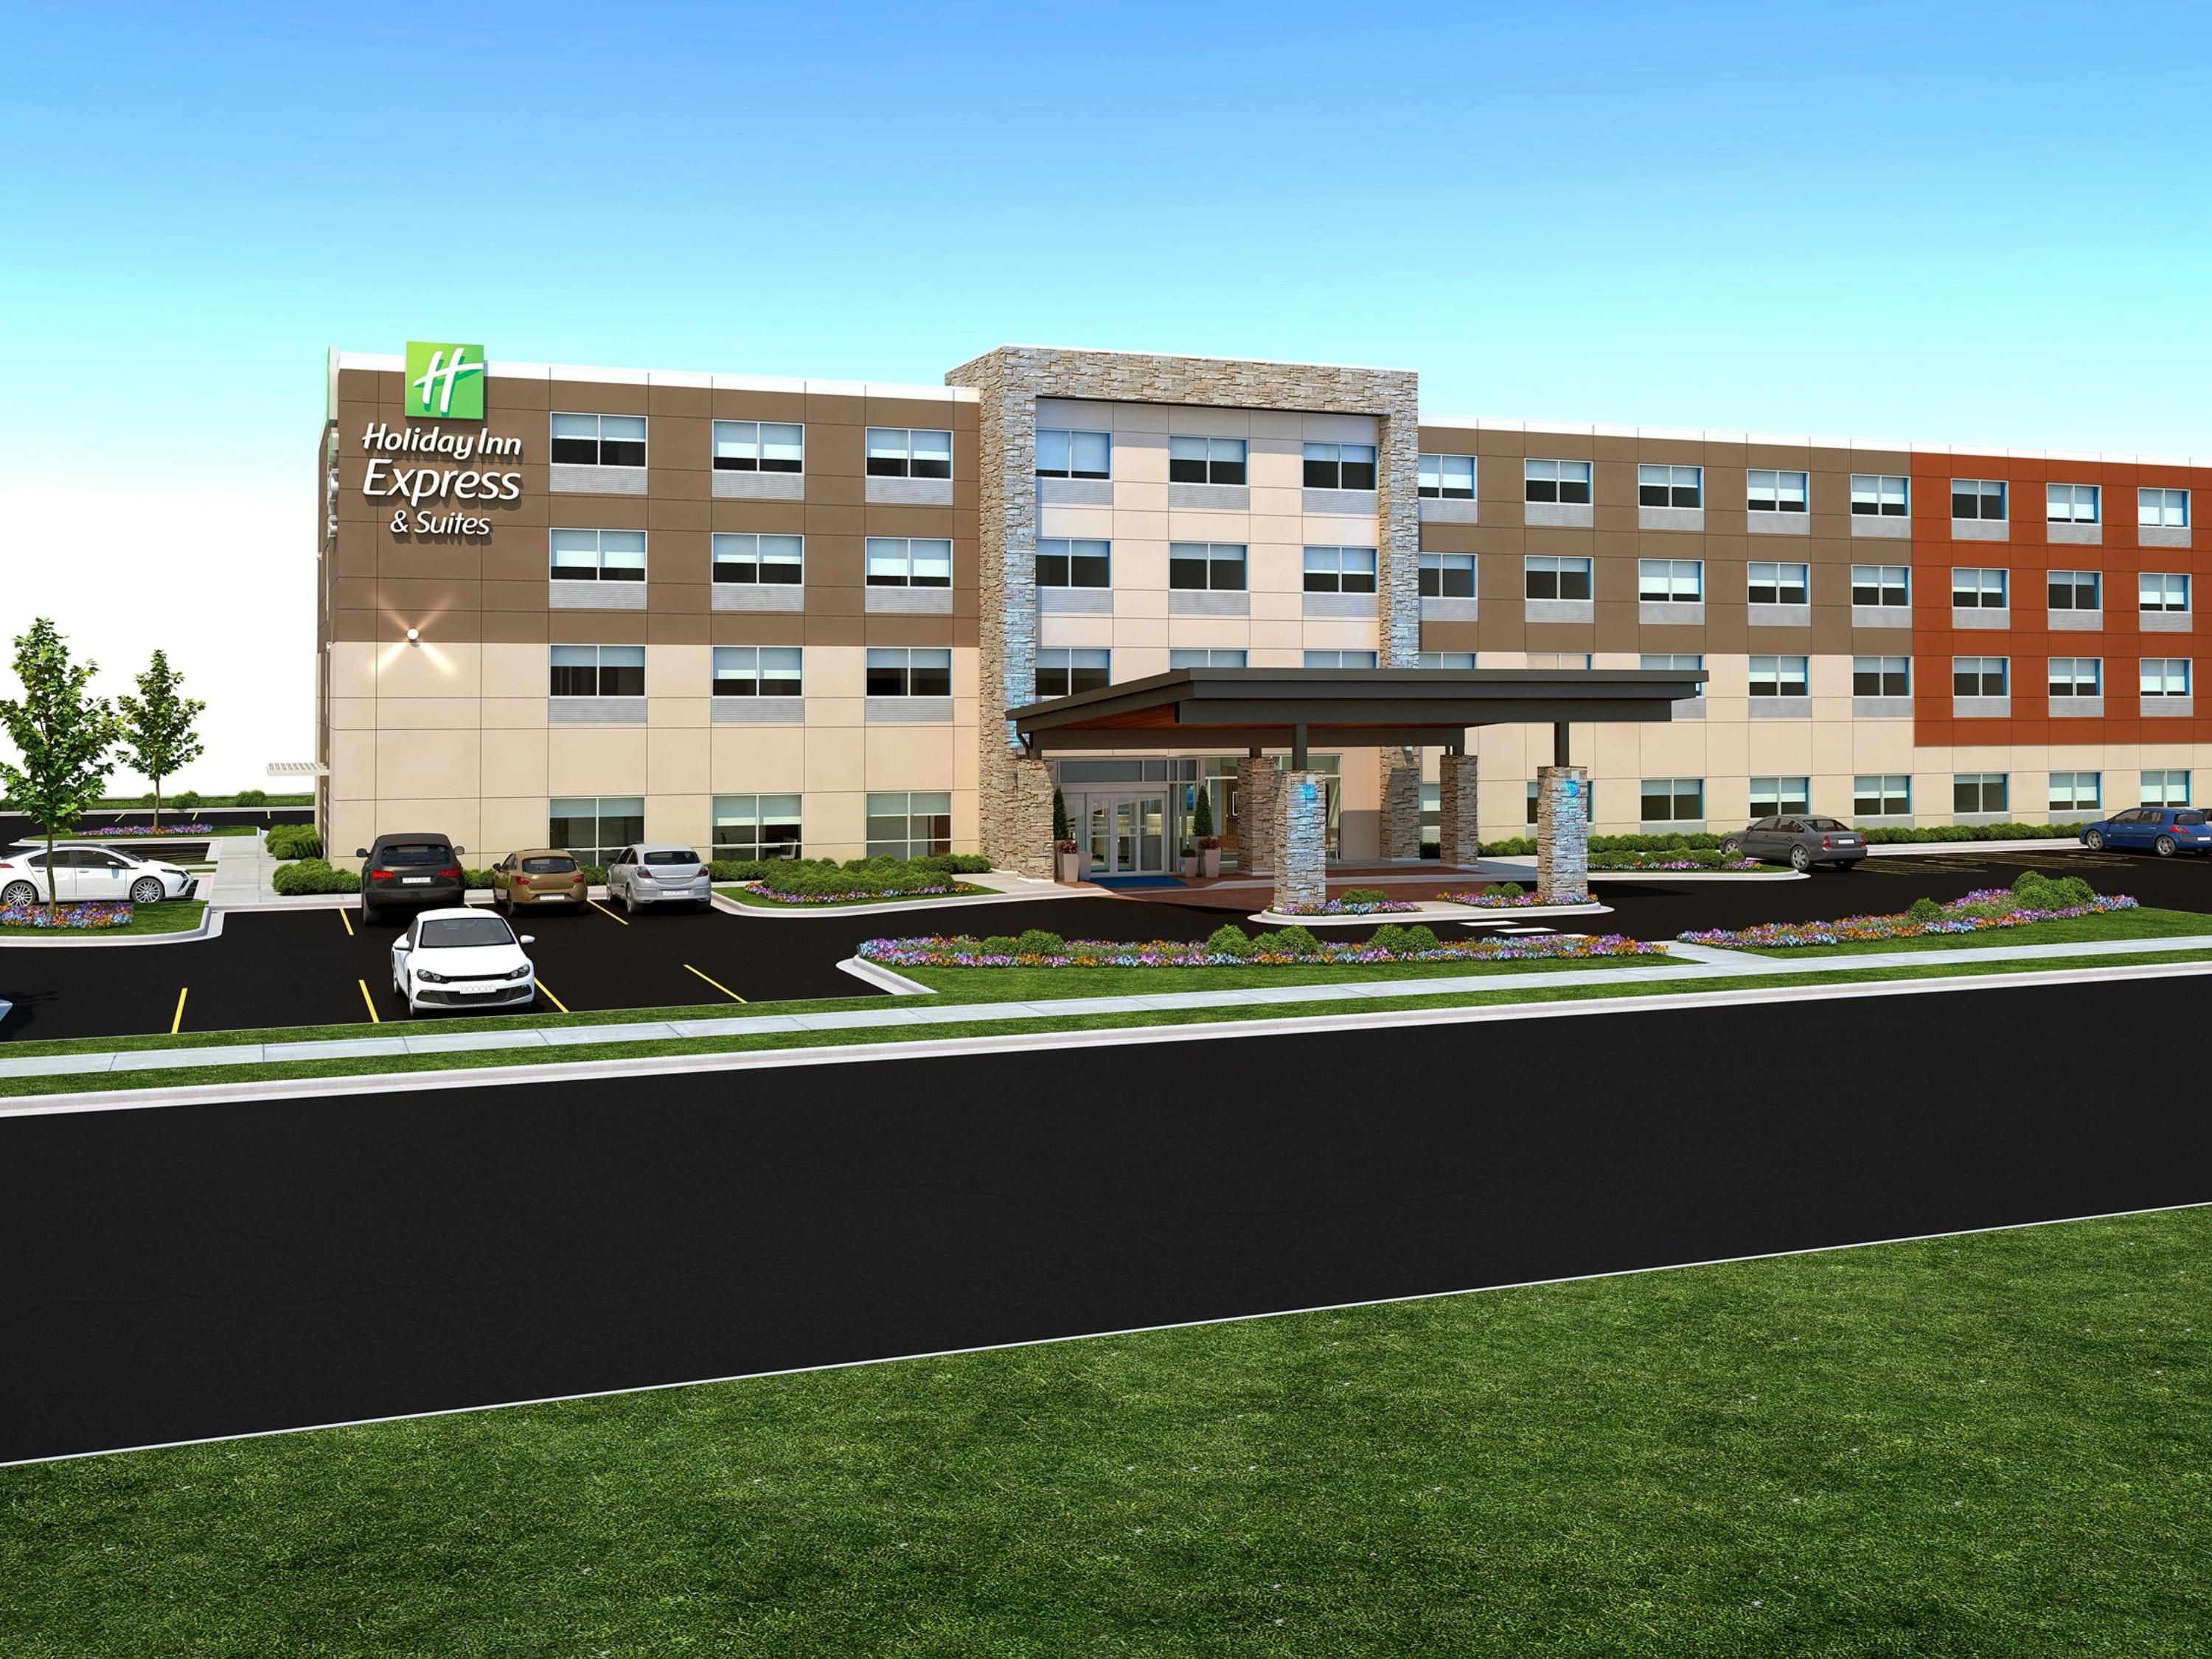 Holiday Inn Express Suites Cincinnati Ne Red Bank Road Hotel By Ihg